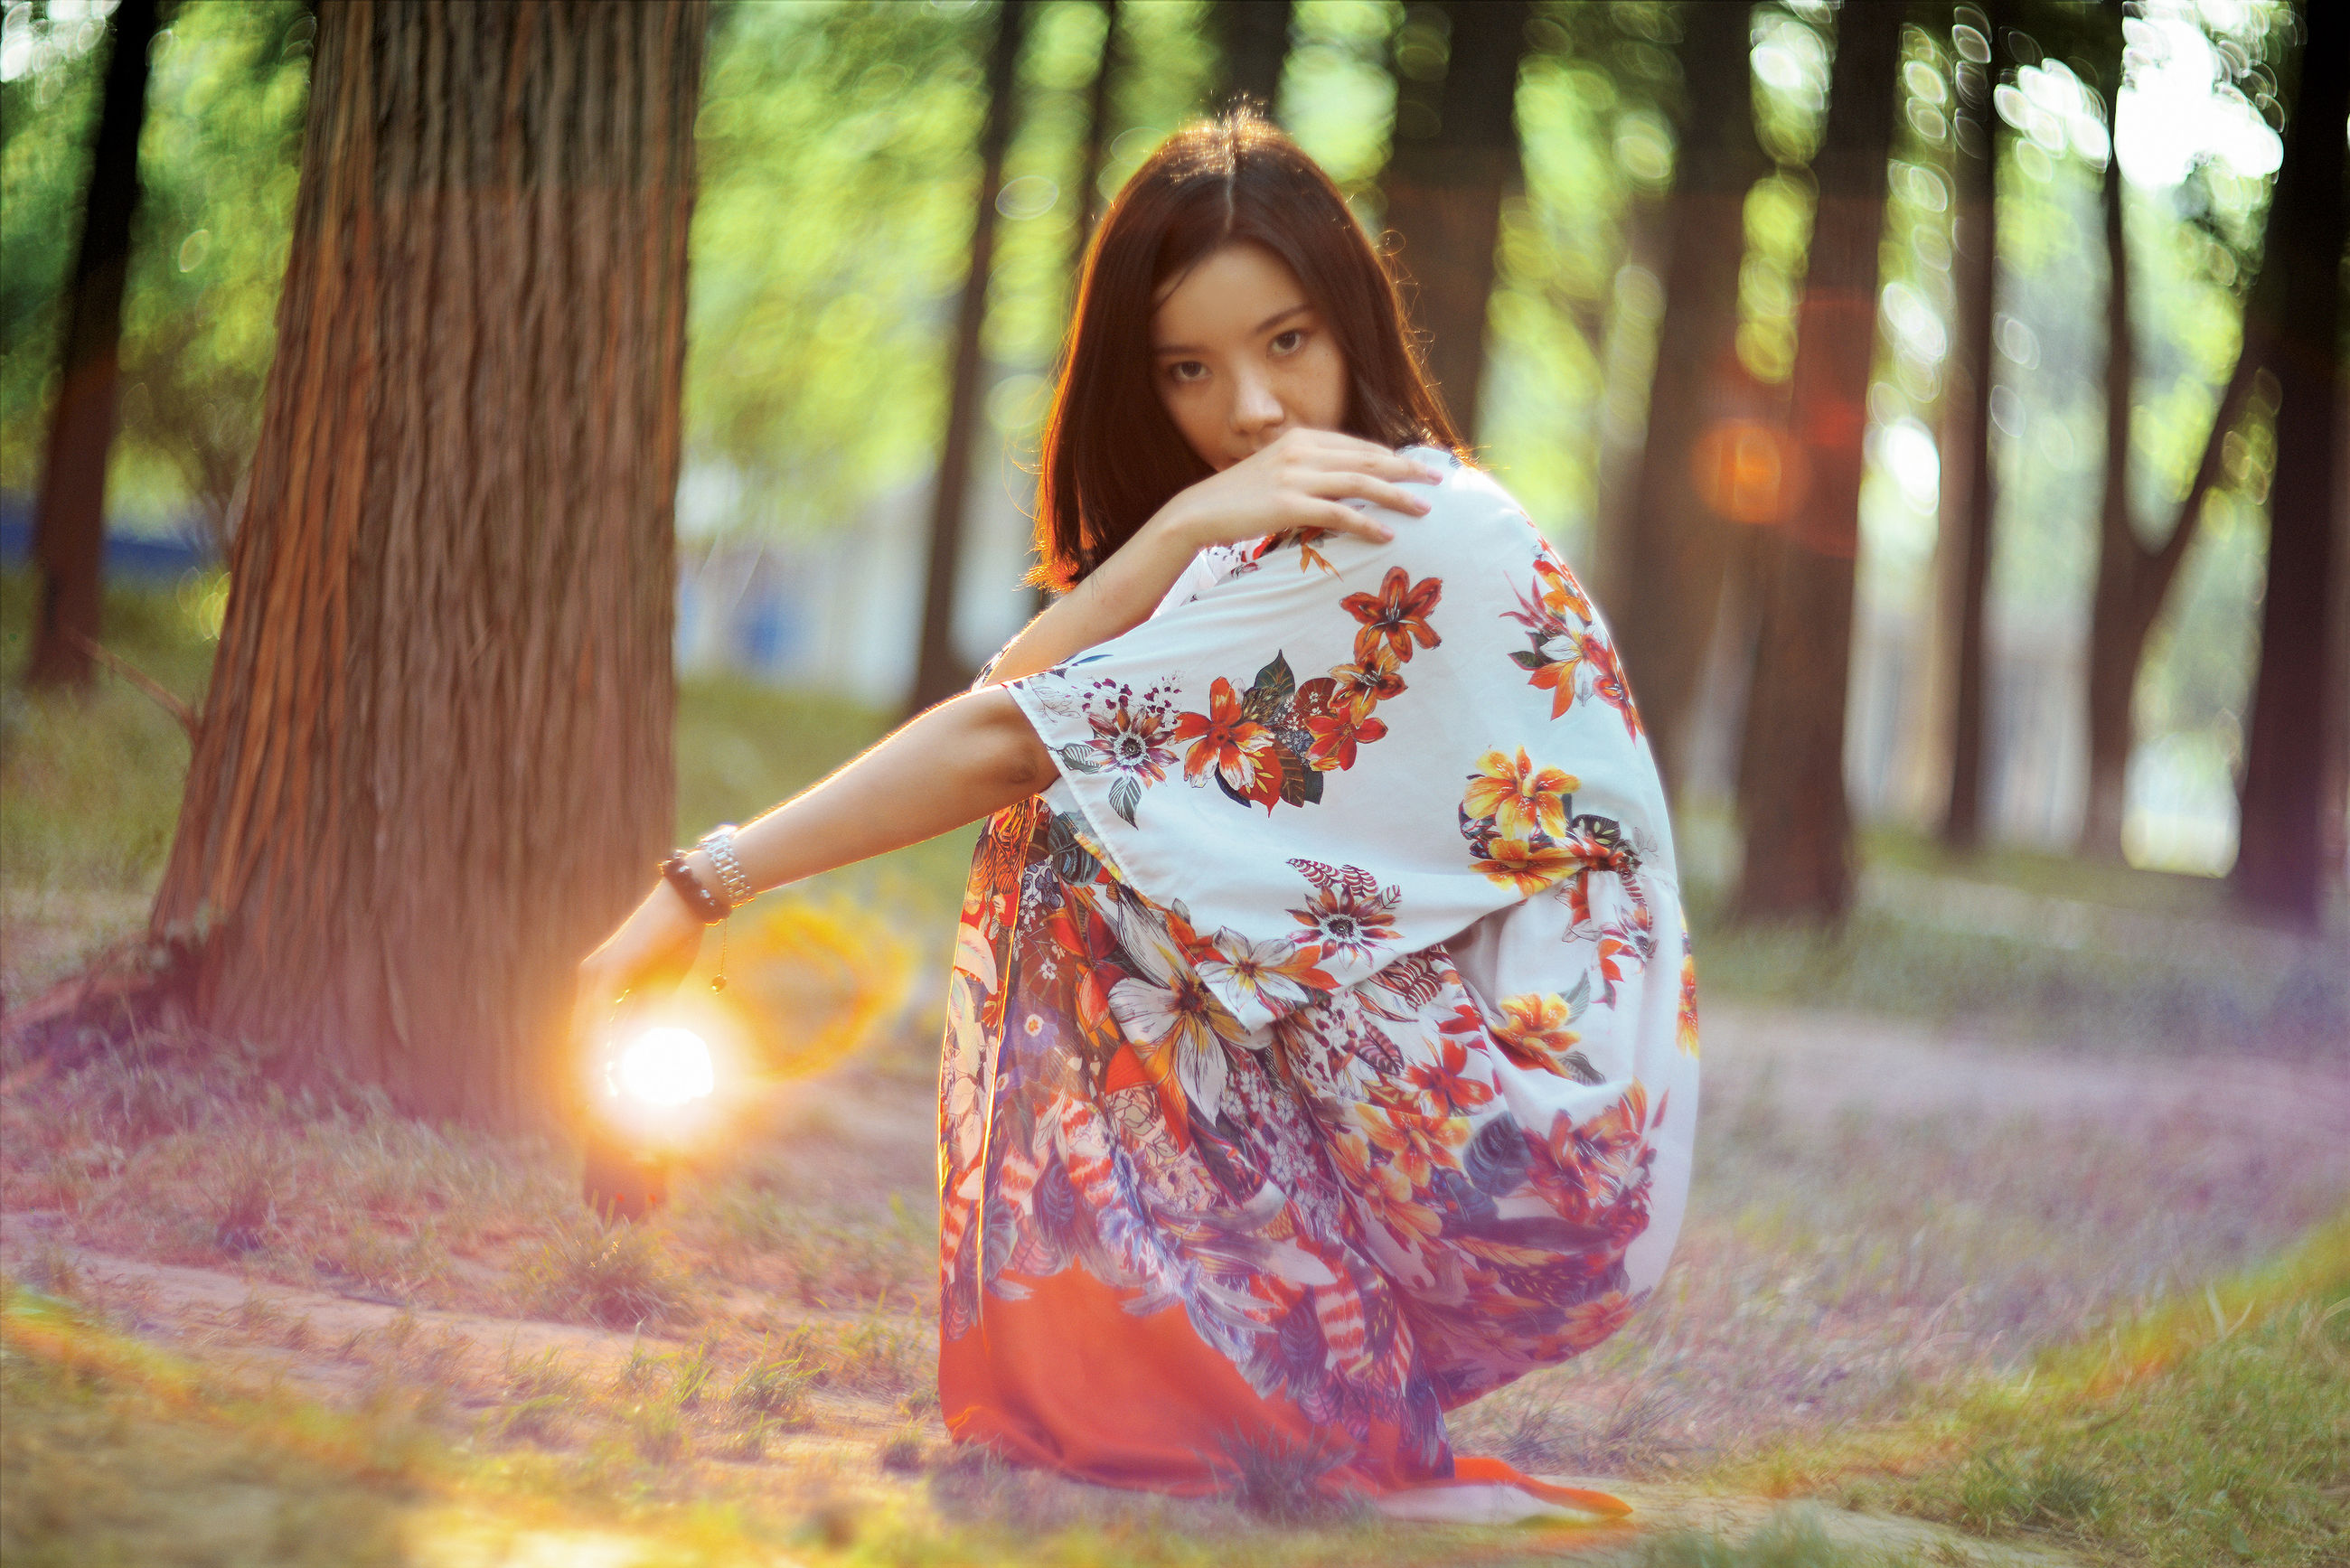 tree, focus on foreground, lifestyles, leisure activity, front view, casual clothing, standing, person, forest, sunlight, outdoors, day, childhood, lens flare, park - man made space, looking at camera, full length, portrait